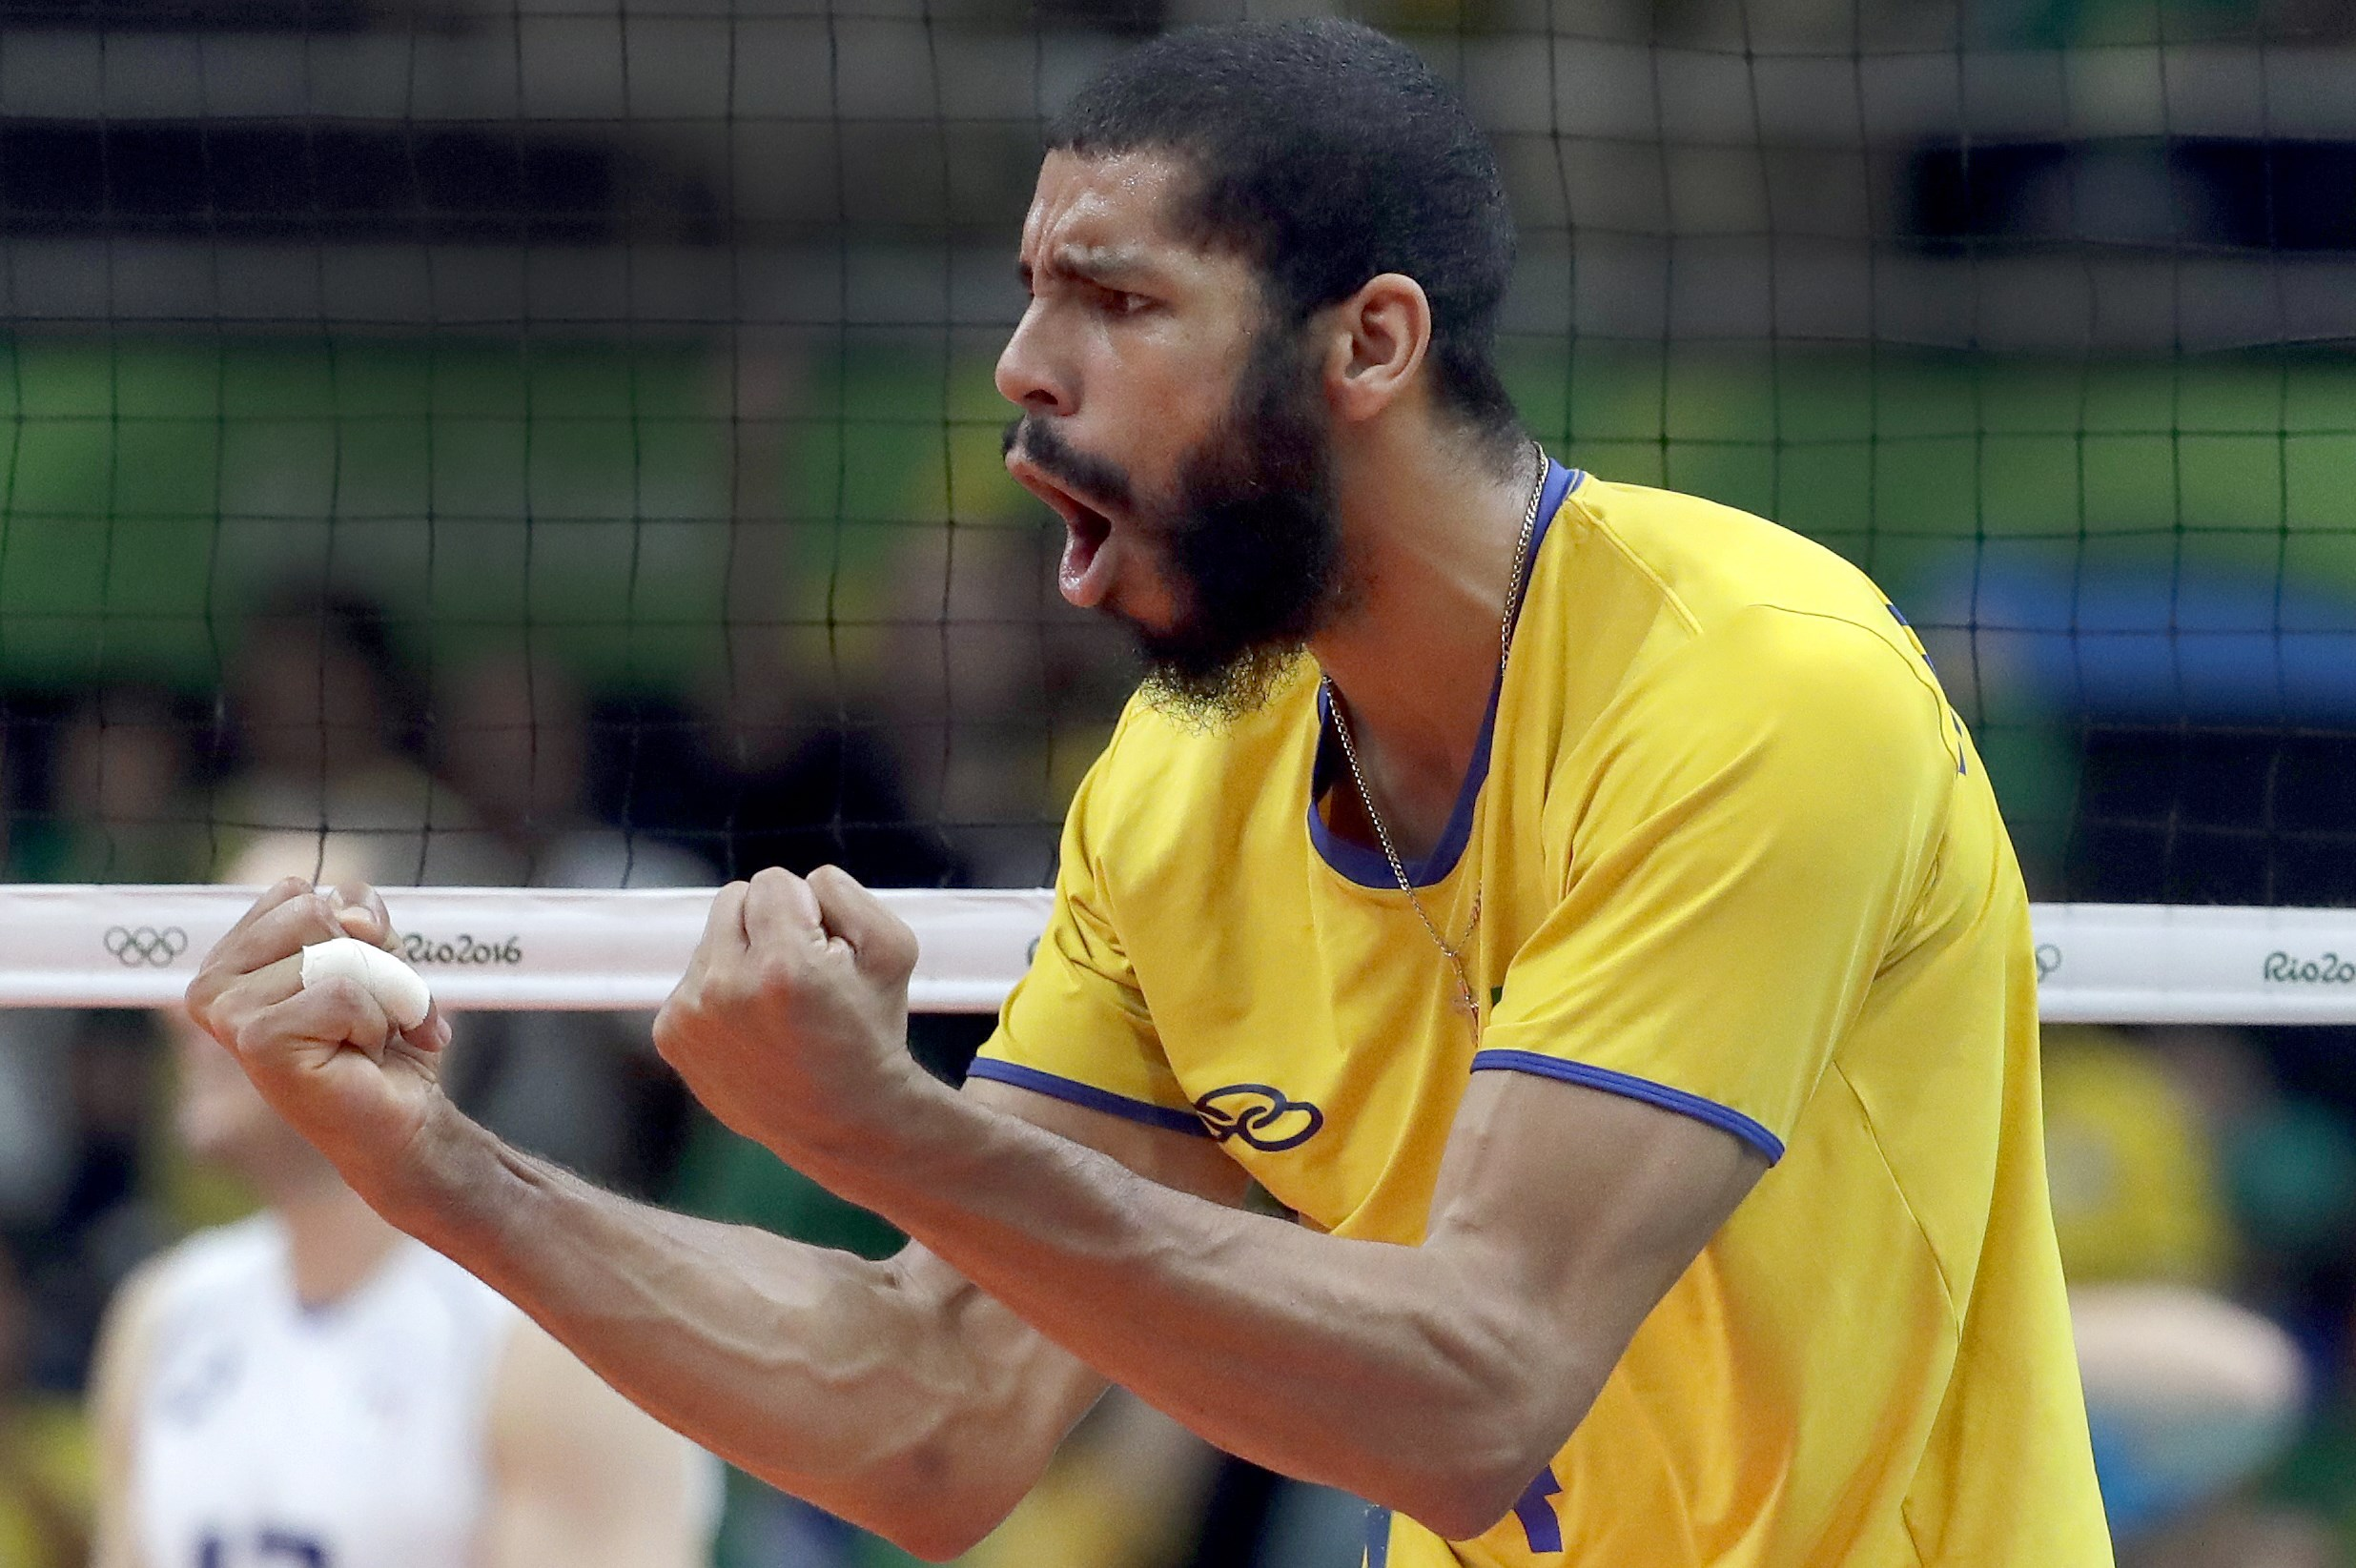 Brazil's Wallace de Souza celebrates during a men's gold medal volleyball match against Italy at the 2016 Summer Olympics in Rio de Janeiro, Brazil, Sunday, Aug. 21, 2016. (AP Photo/Jeff Roberson)